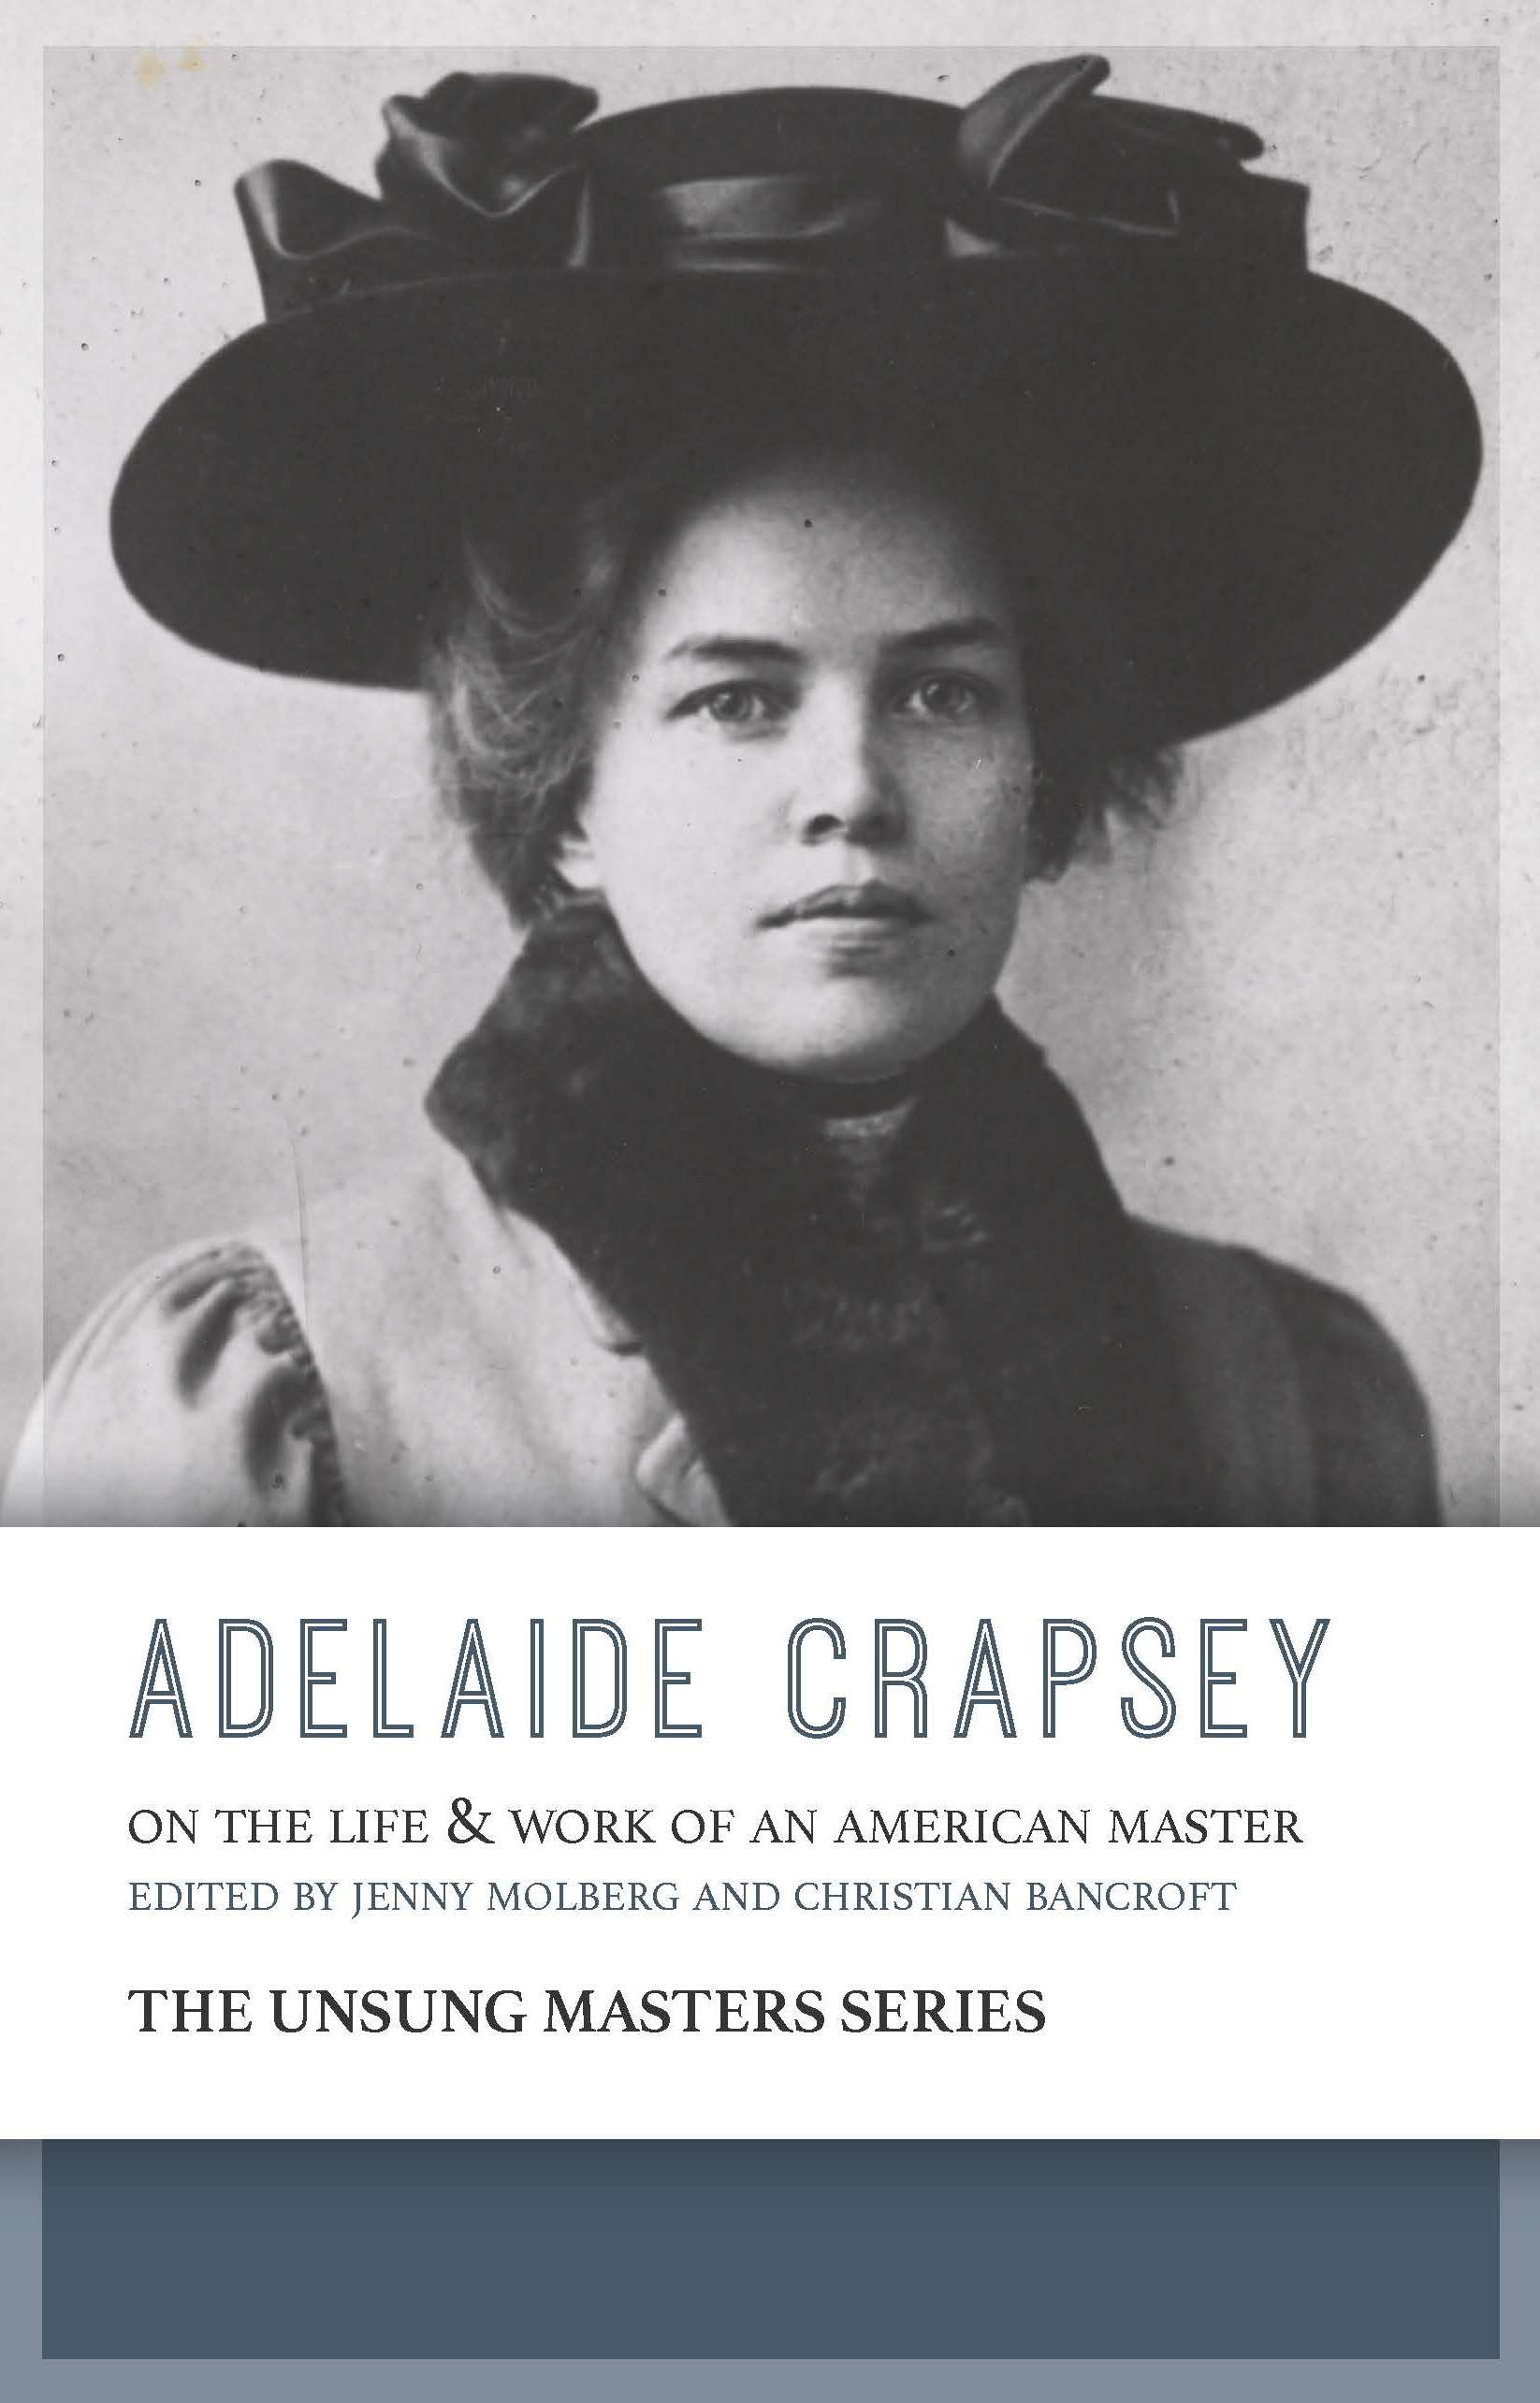 Adelaide Crapsey: On the Life and Work of an American Master